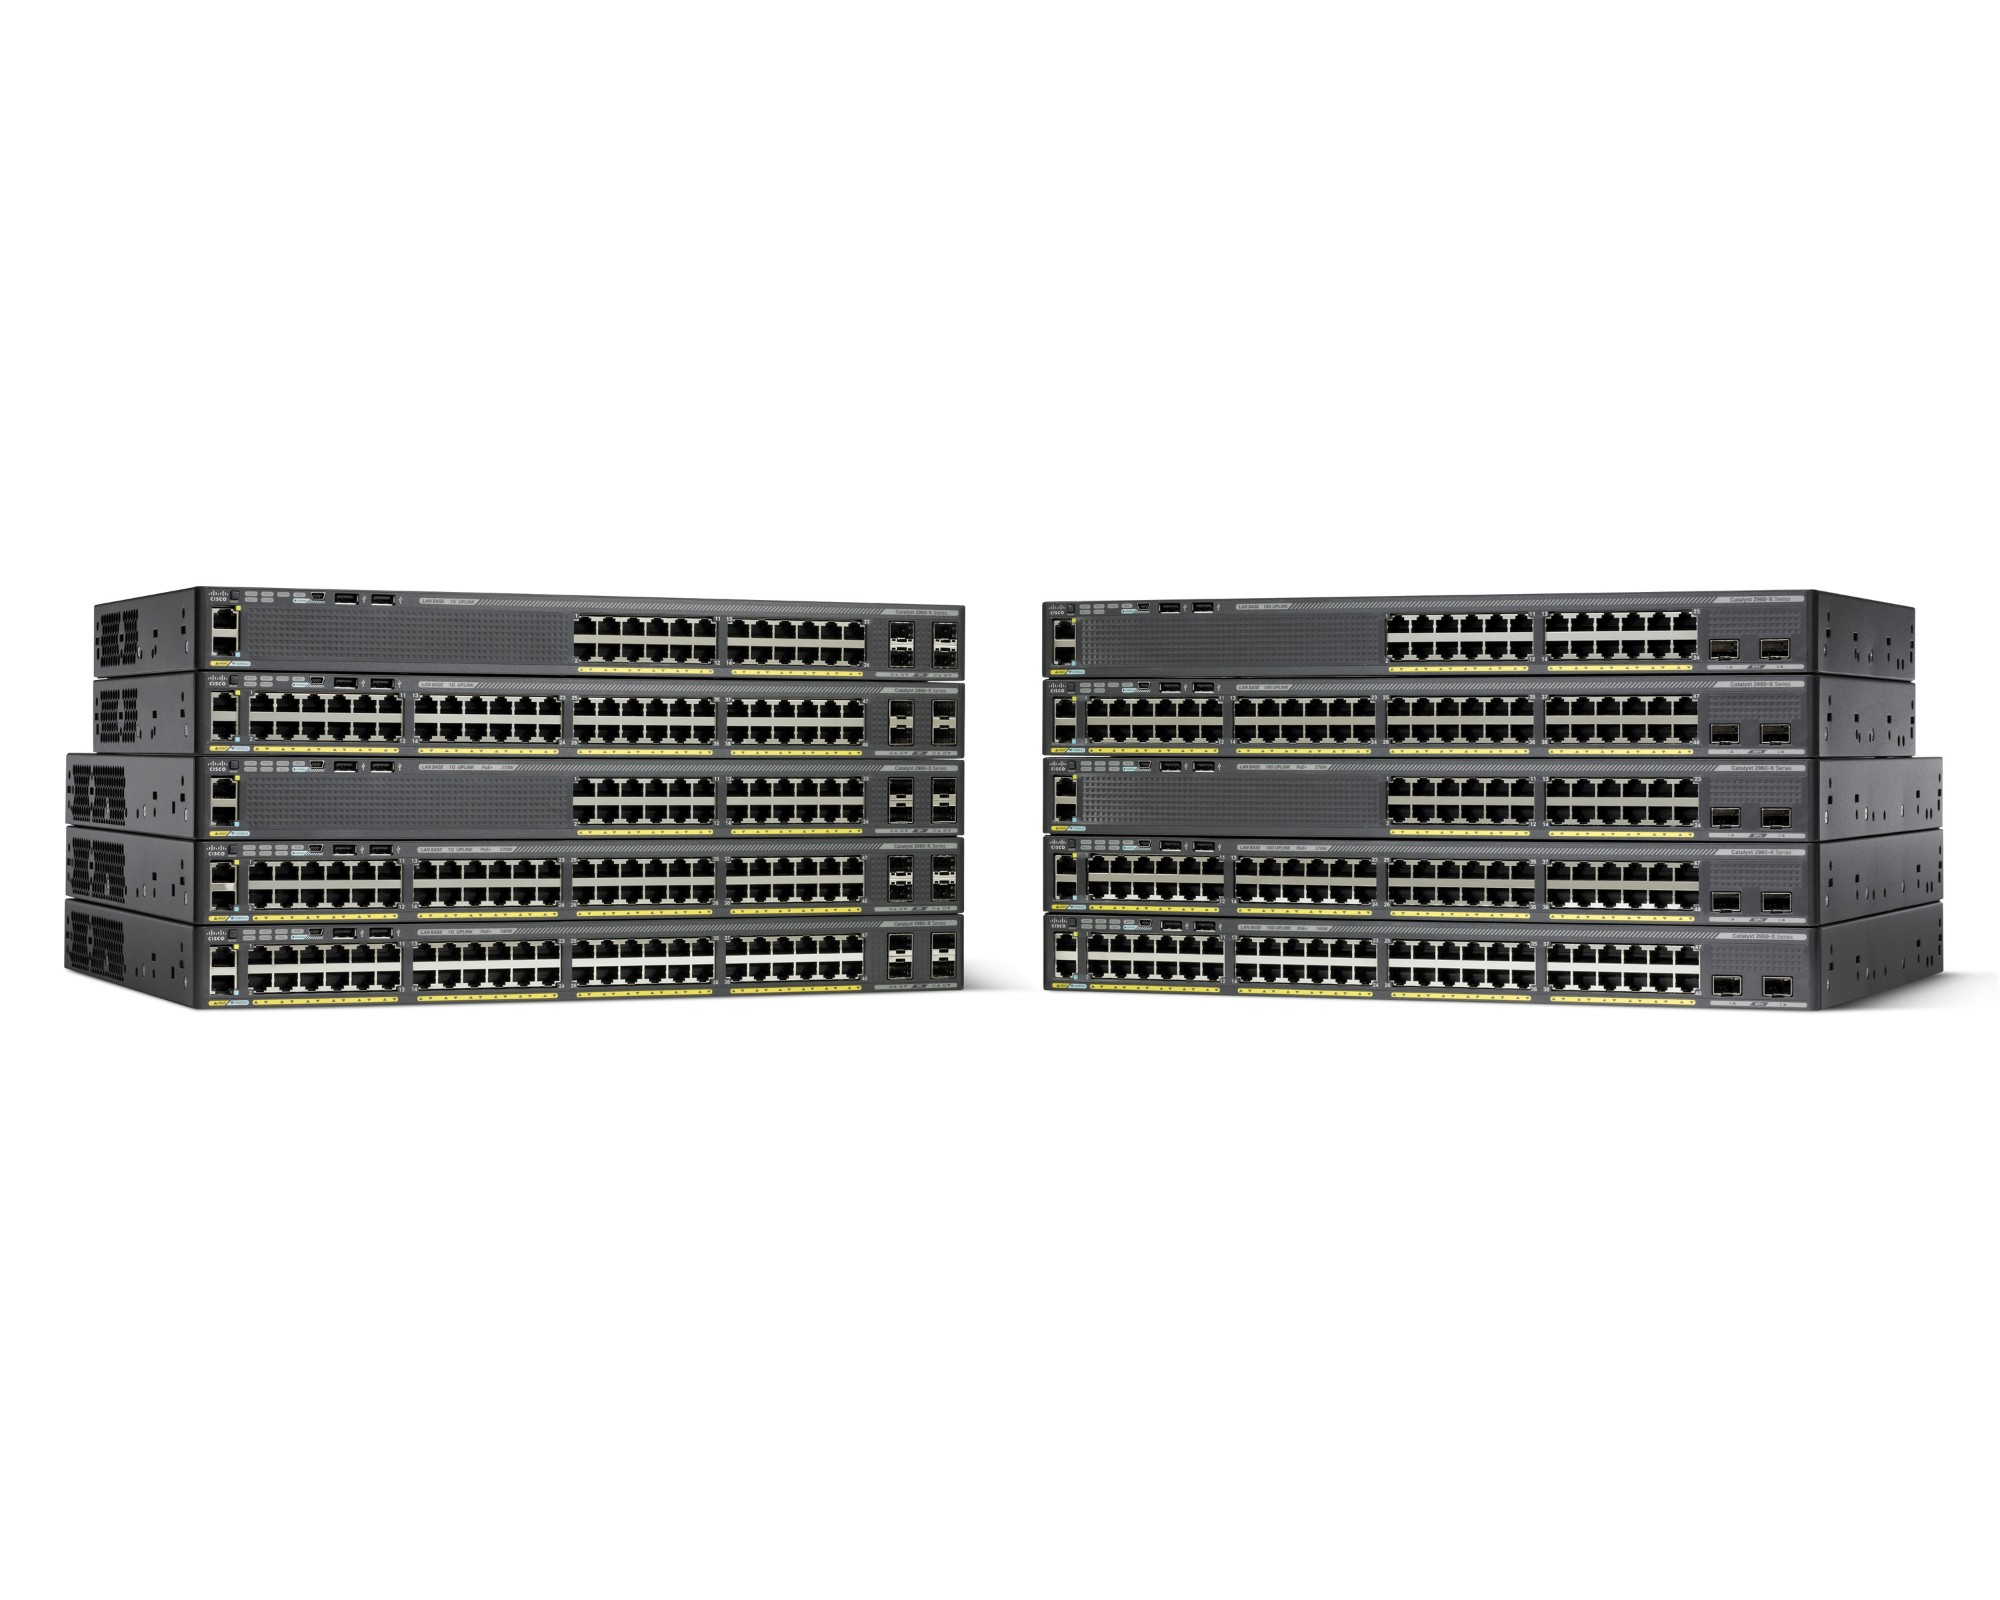 Cisco WS-C2960XR-24PD-I netwerk-switch Managed L2 Gigabit Ethernet (10/100/1000) Zwart Power over Ethernet (PoE)